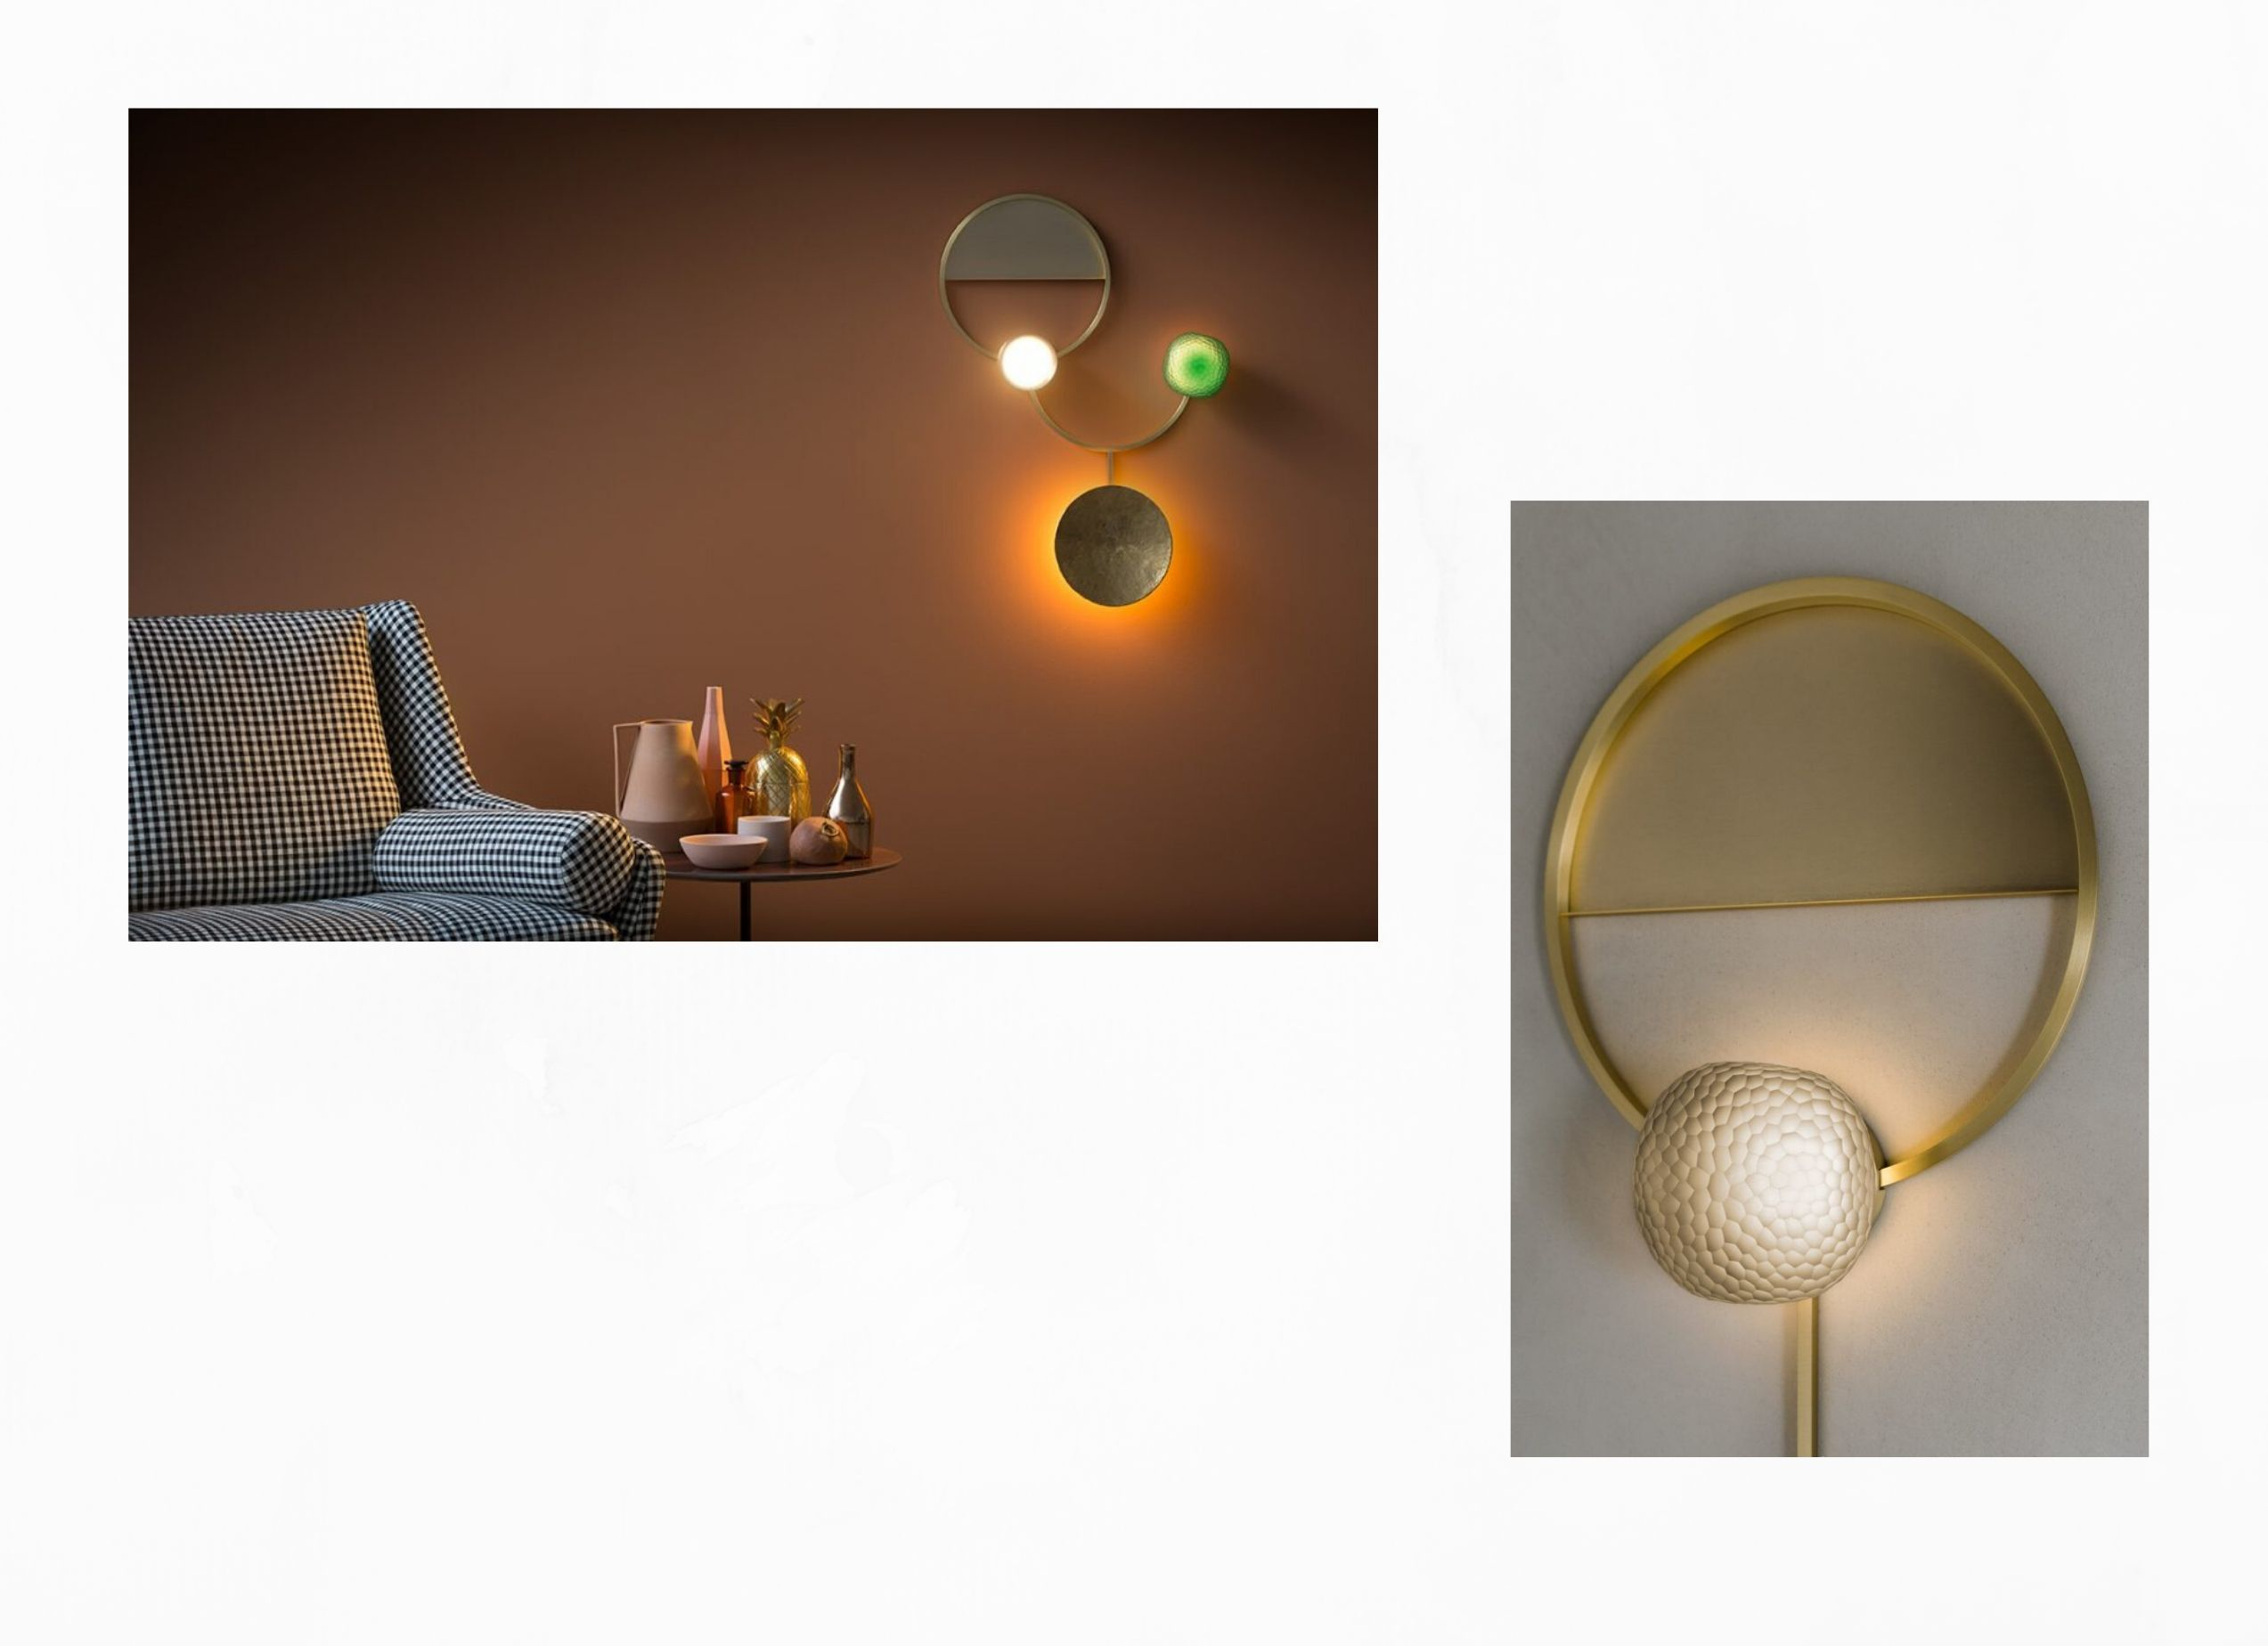 The Gioielli collection by Giopato & Coombes